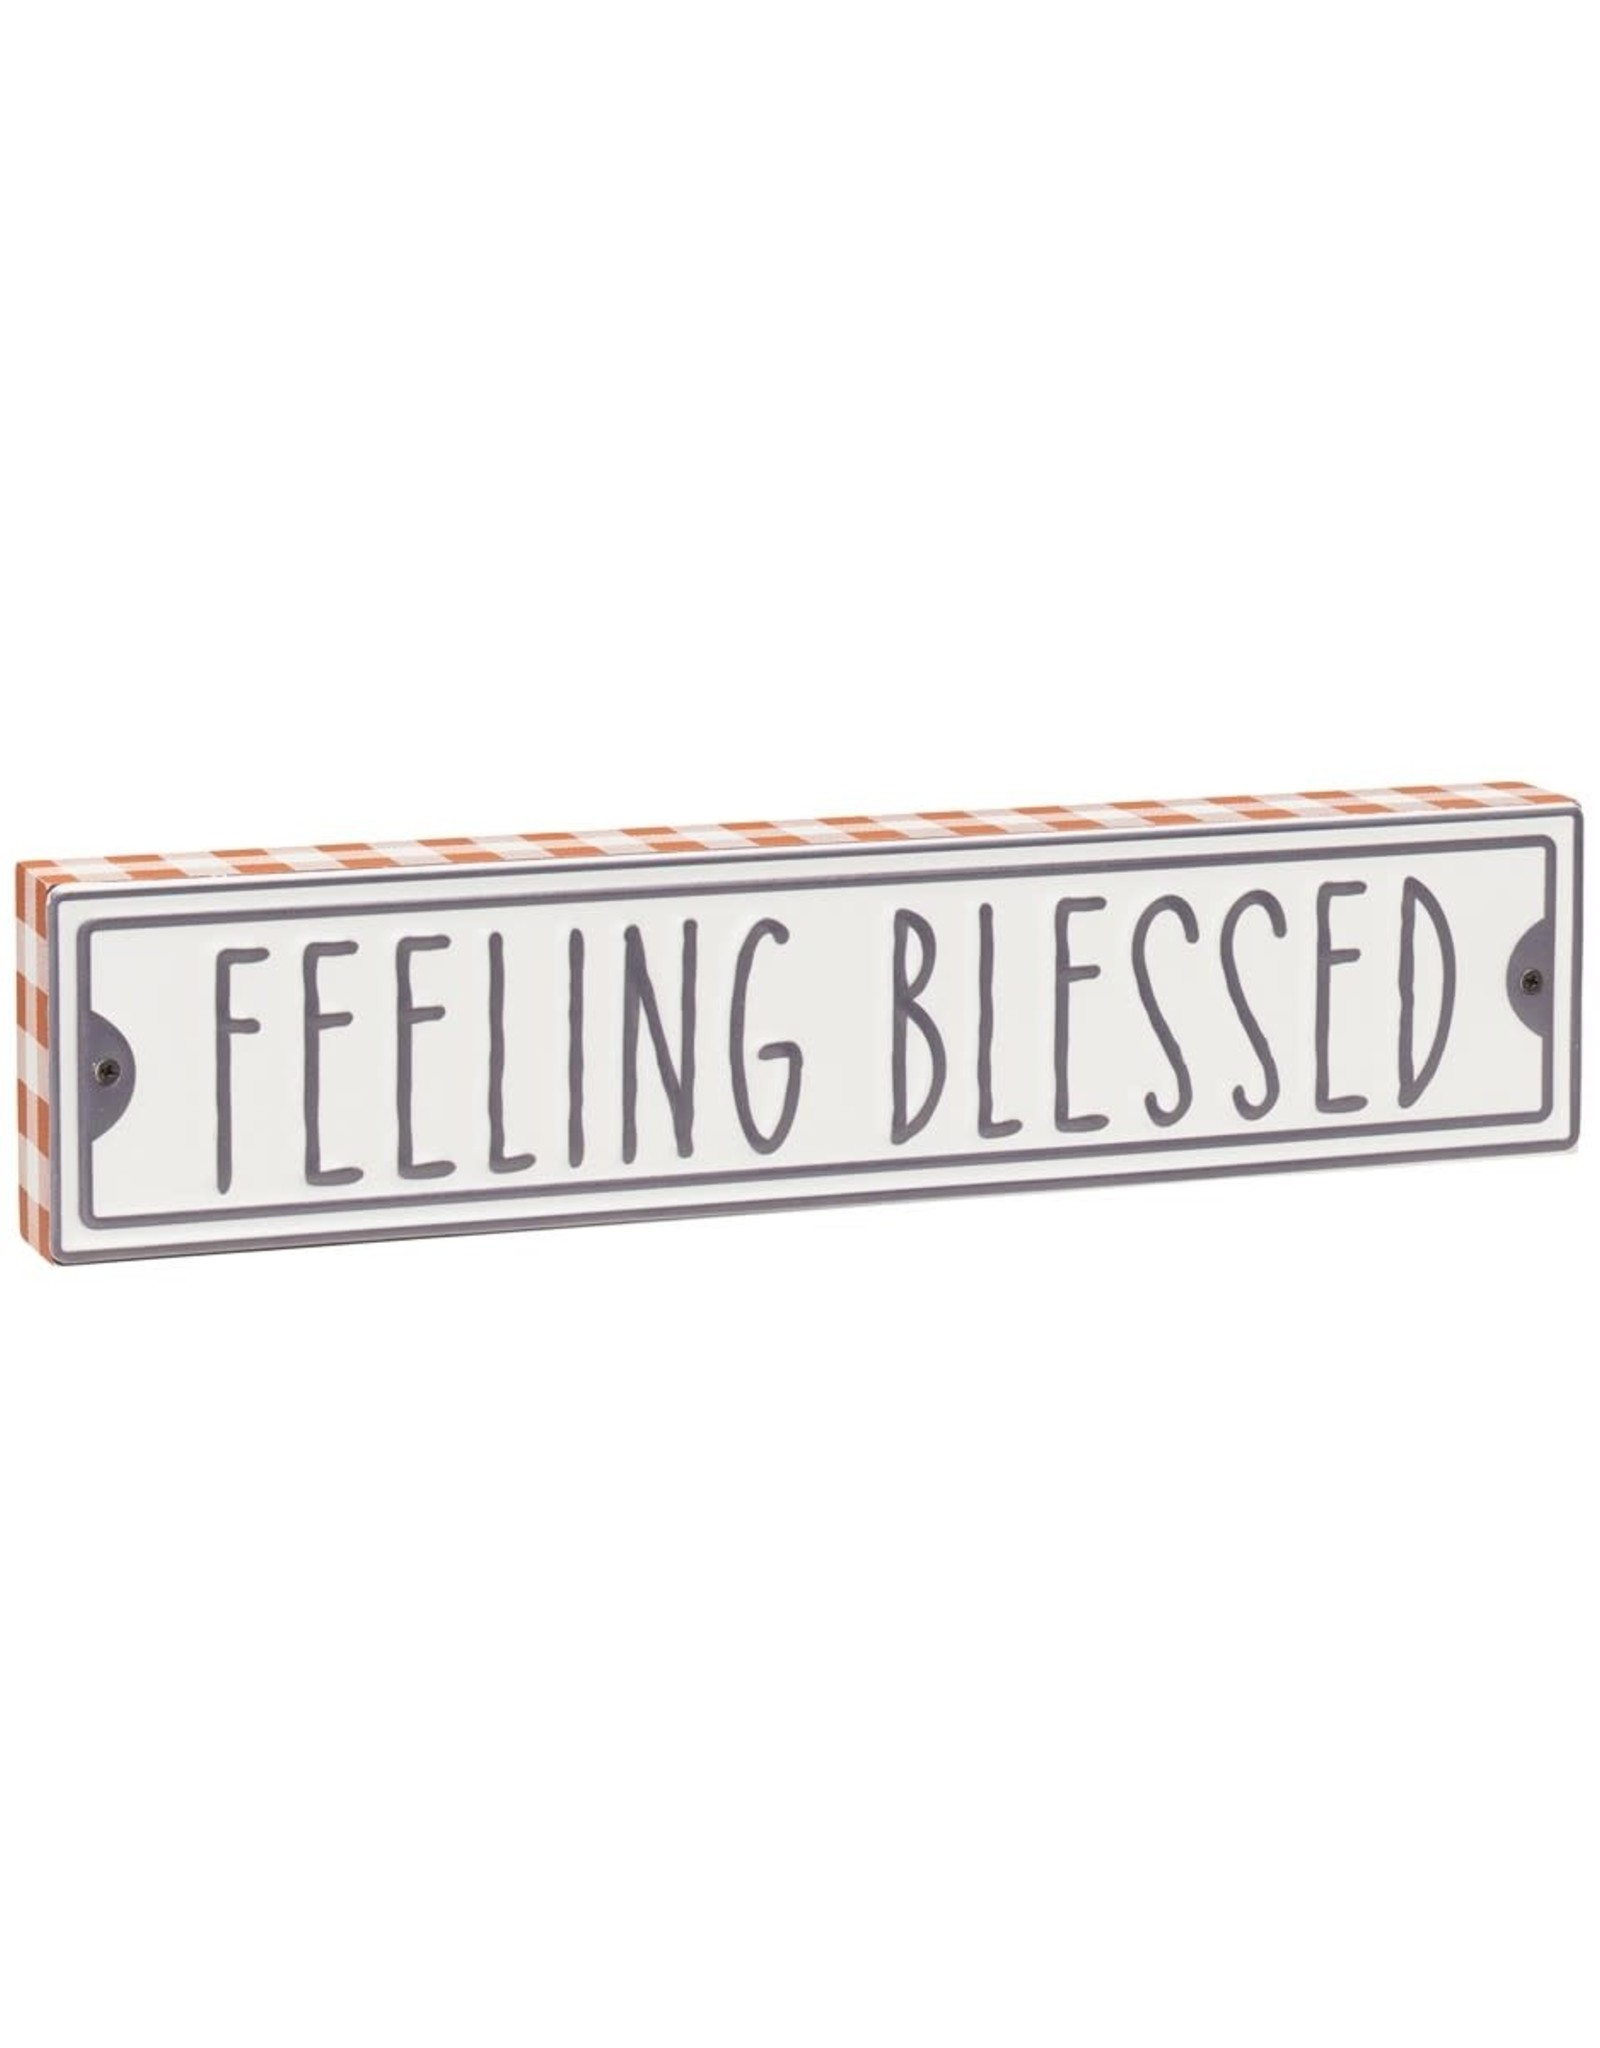 Blessed Street Box Sign